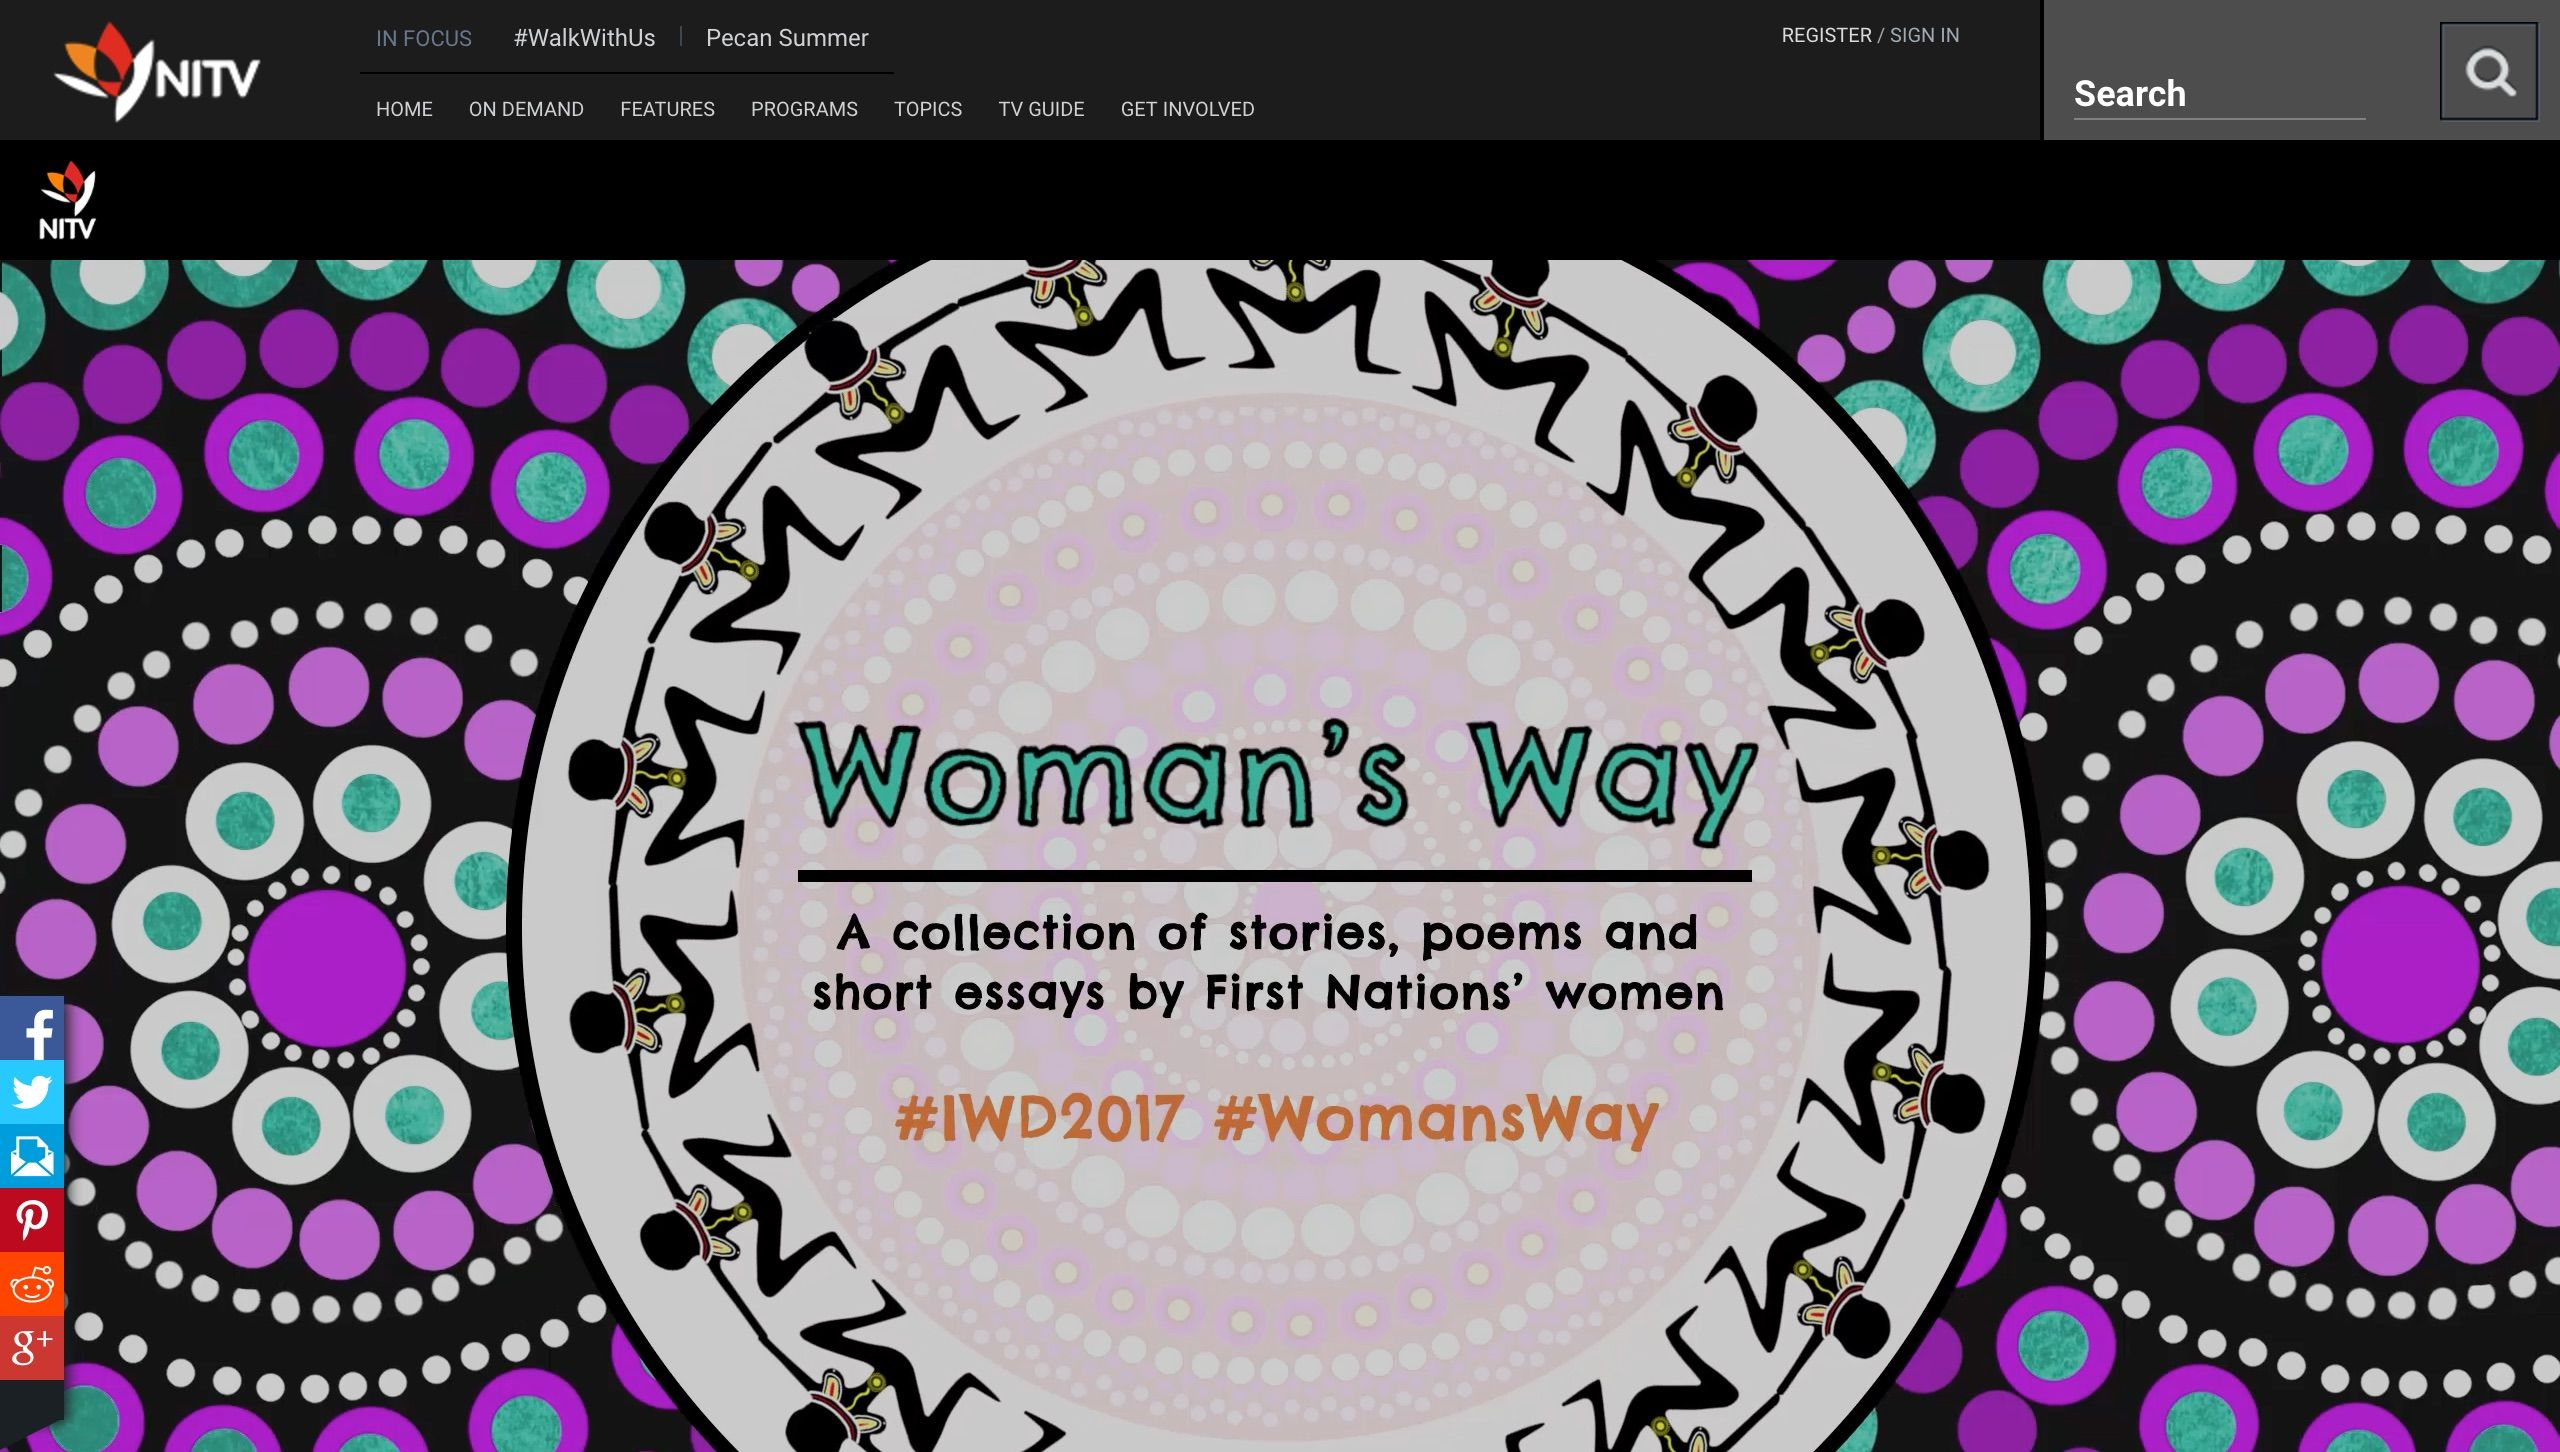 w s way a collection of stories poems and short essays by w s way a collection of stories poems and short essays by first nations women nitv news features shorts poem and short essay